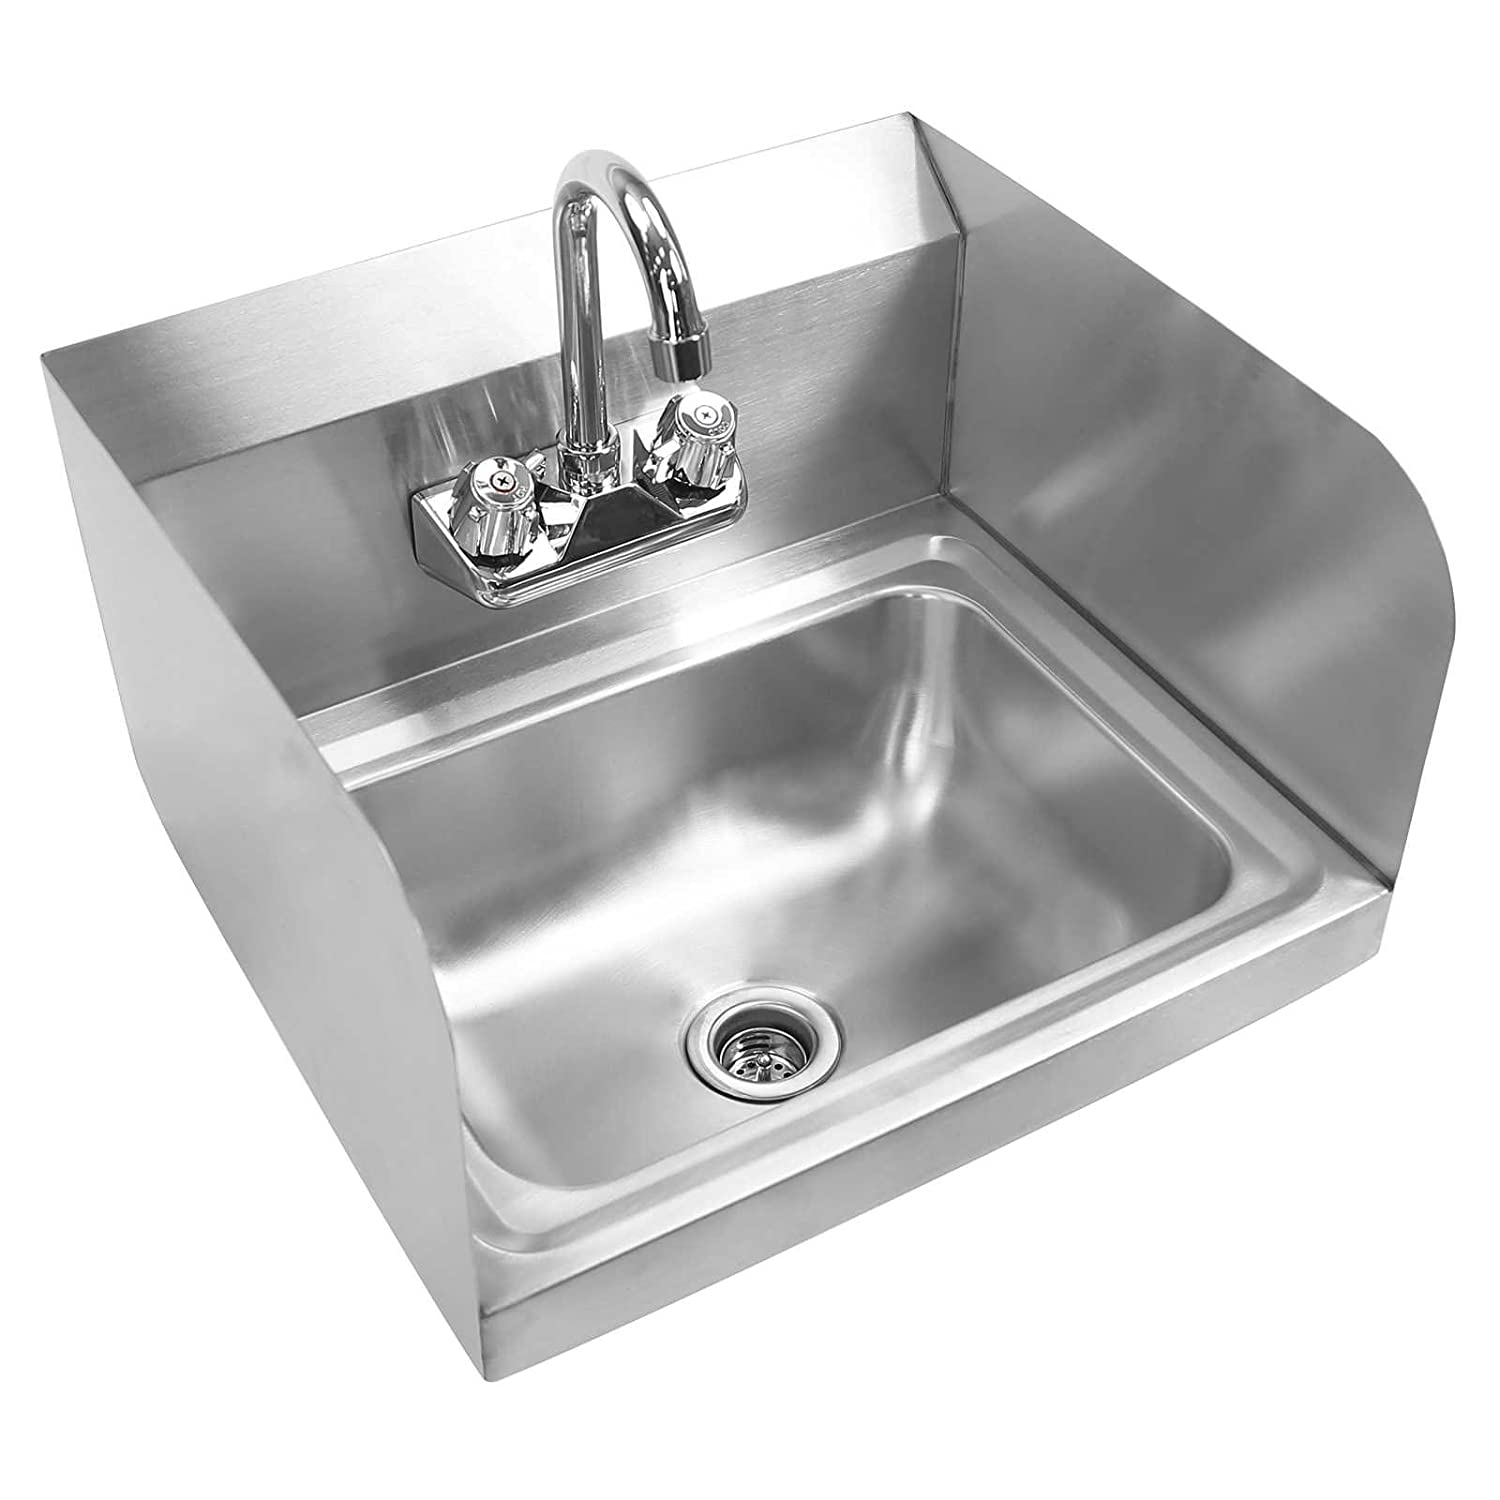 Gridmann Commercial NSF Stainless Steel Sink With Faucet U0026 Sidesplashes    Wall Mount Hand Washing Basin